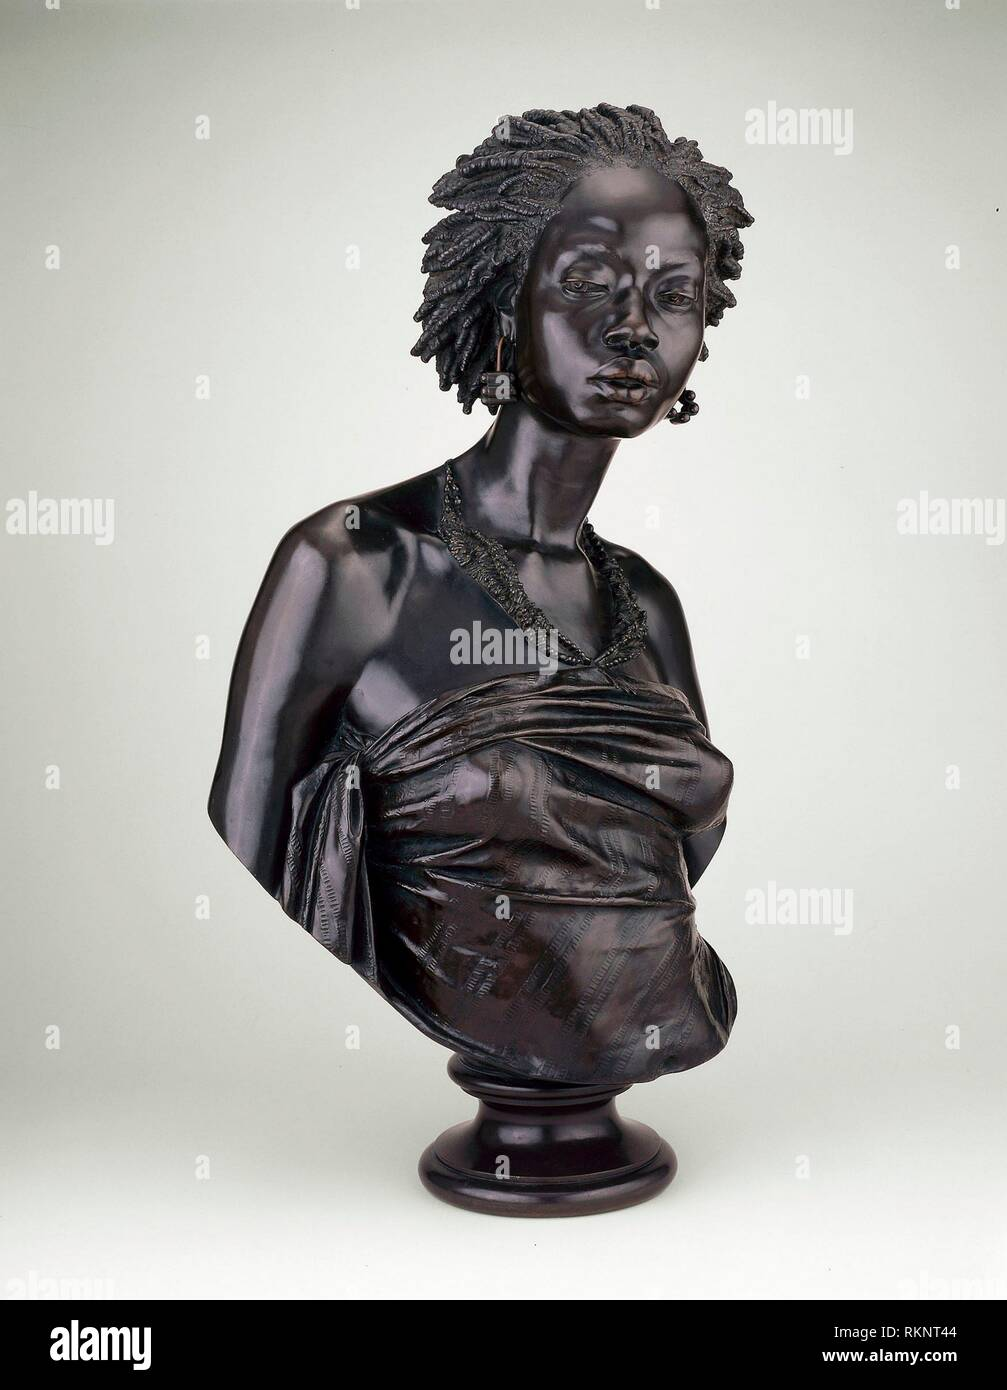 Bust of an African Woman - 1851 - Charles Henri Joseph Cordier French, 1827-1905 Cast by: Eck et Durand Fondeur French, 19th century - Artist: - Stock Image